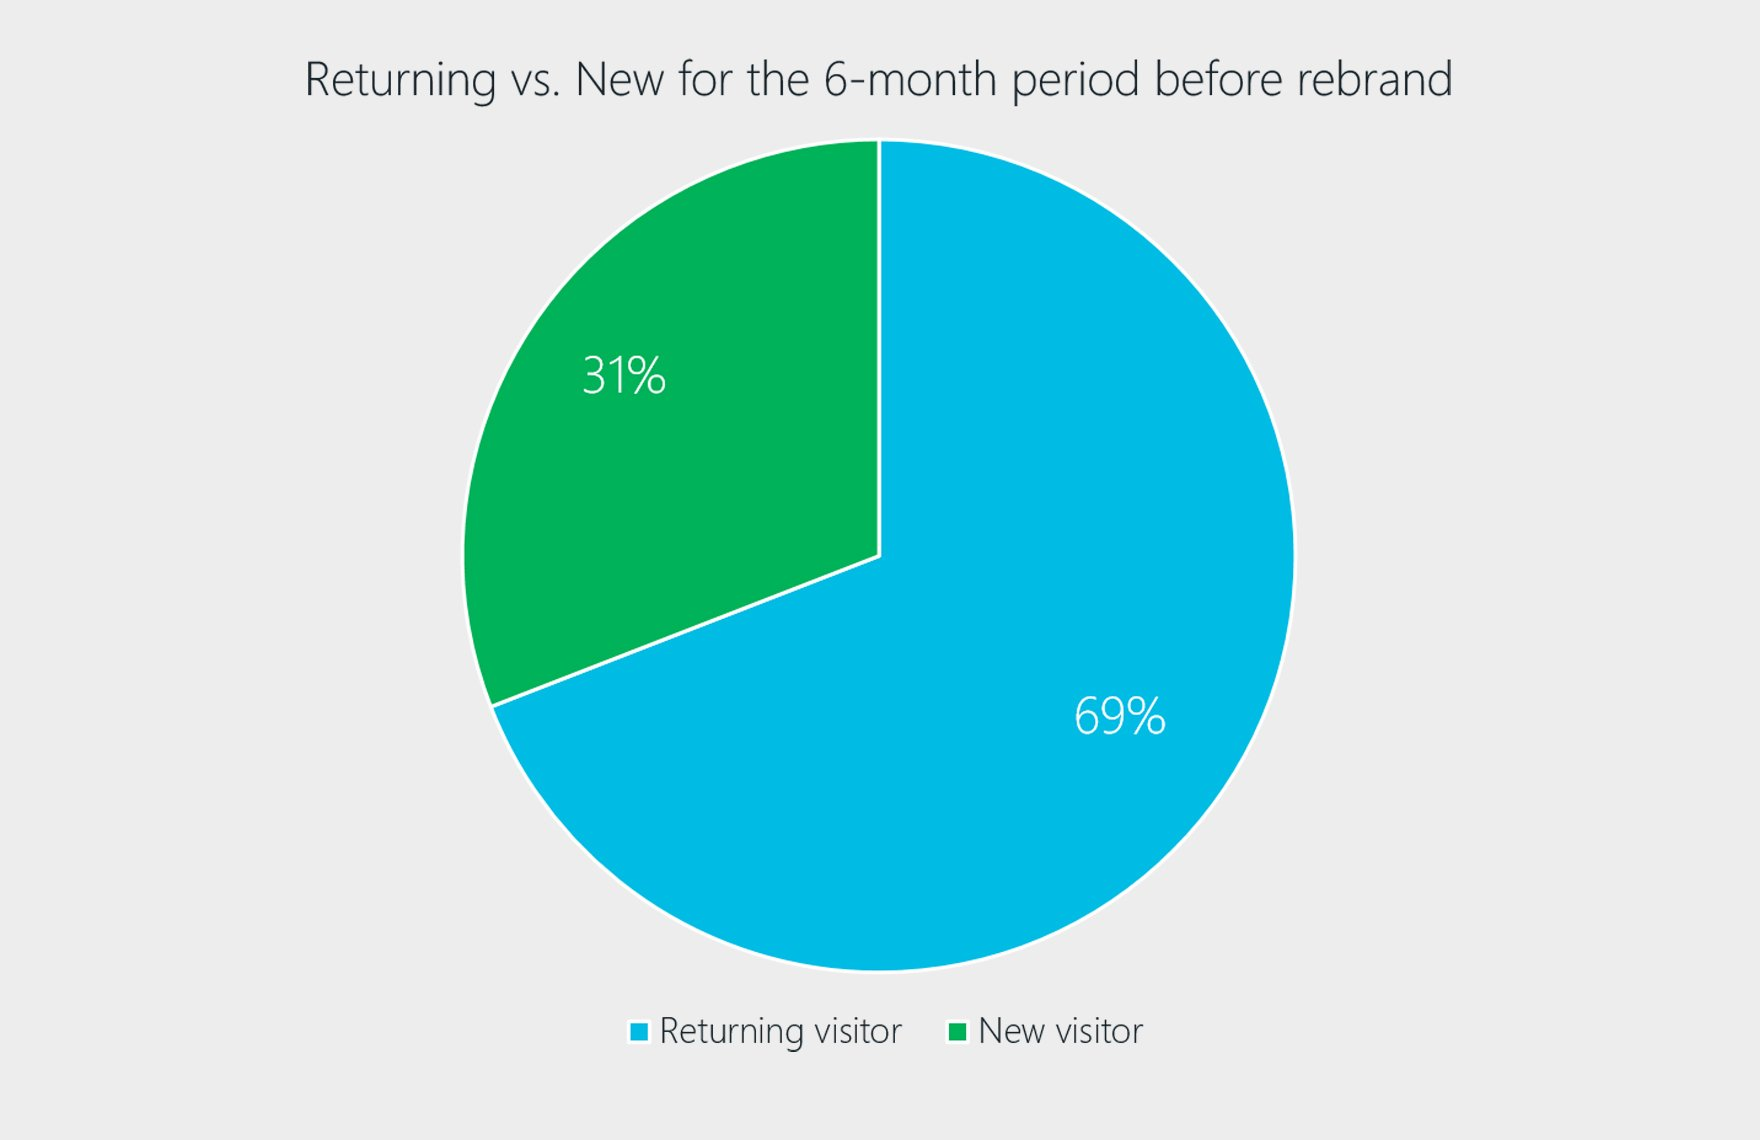 Returning vs New visitors for the 6-month period chart.